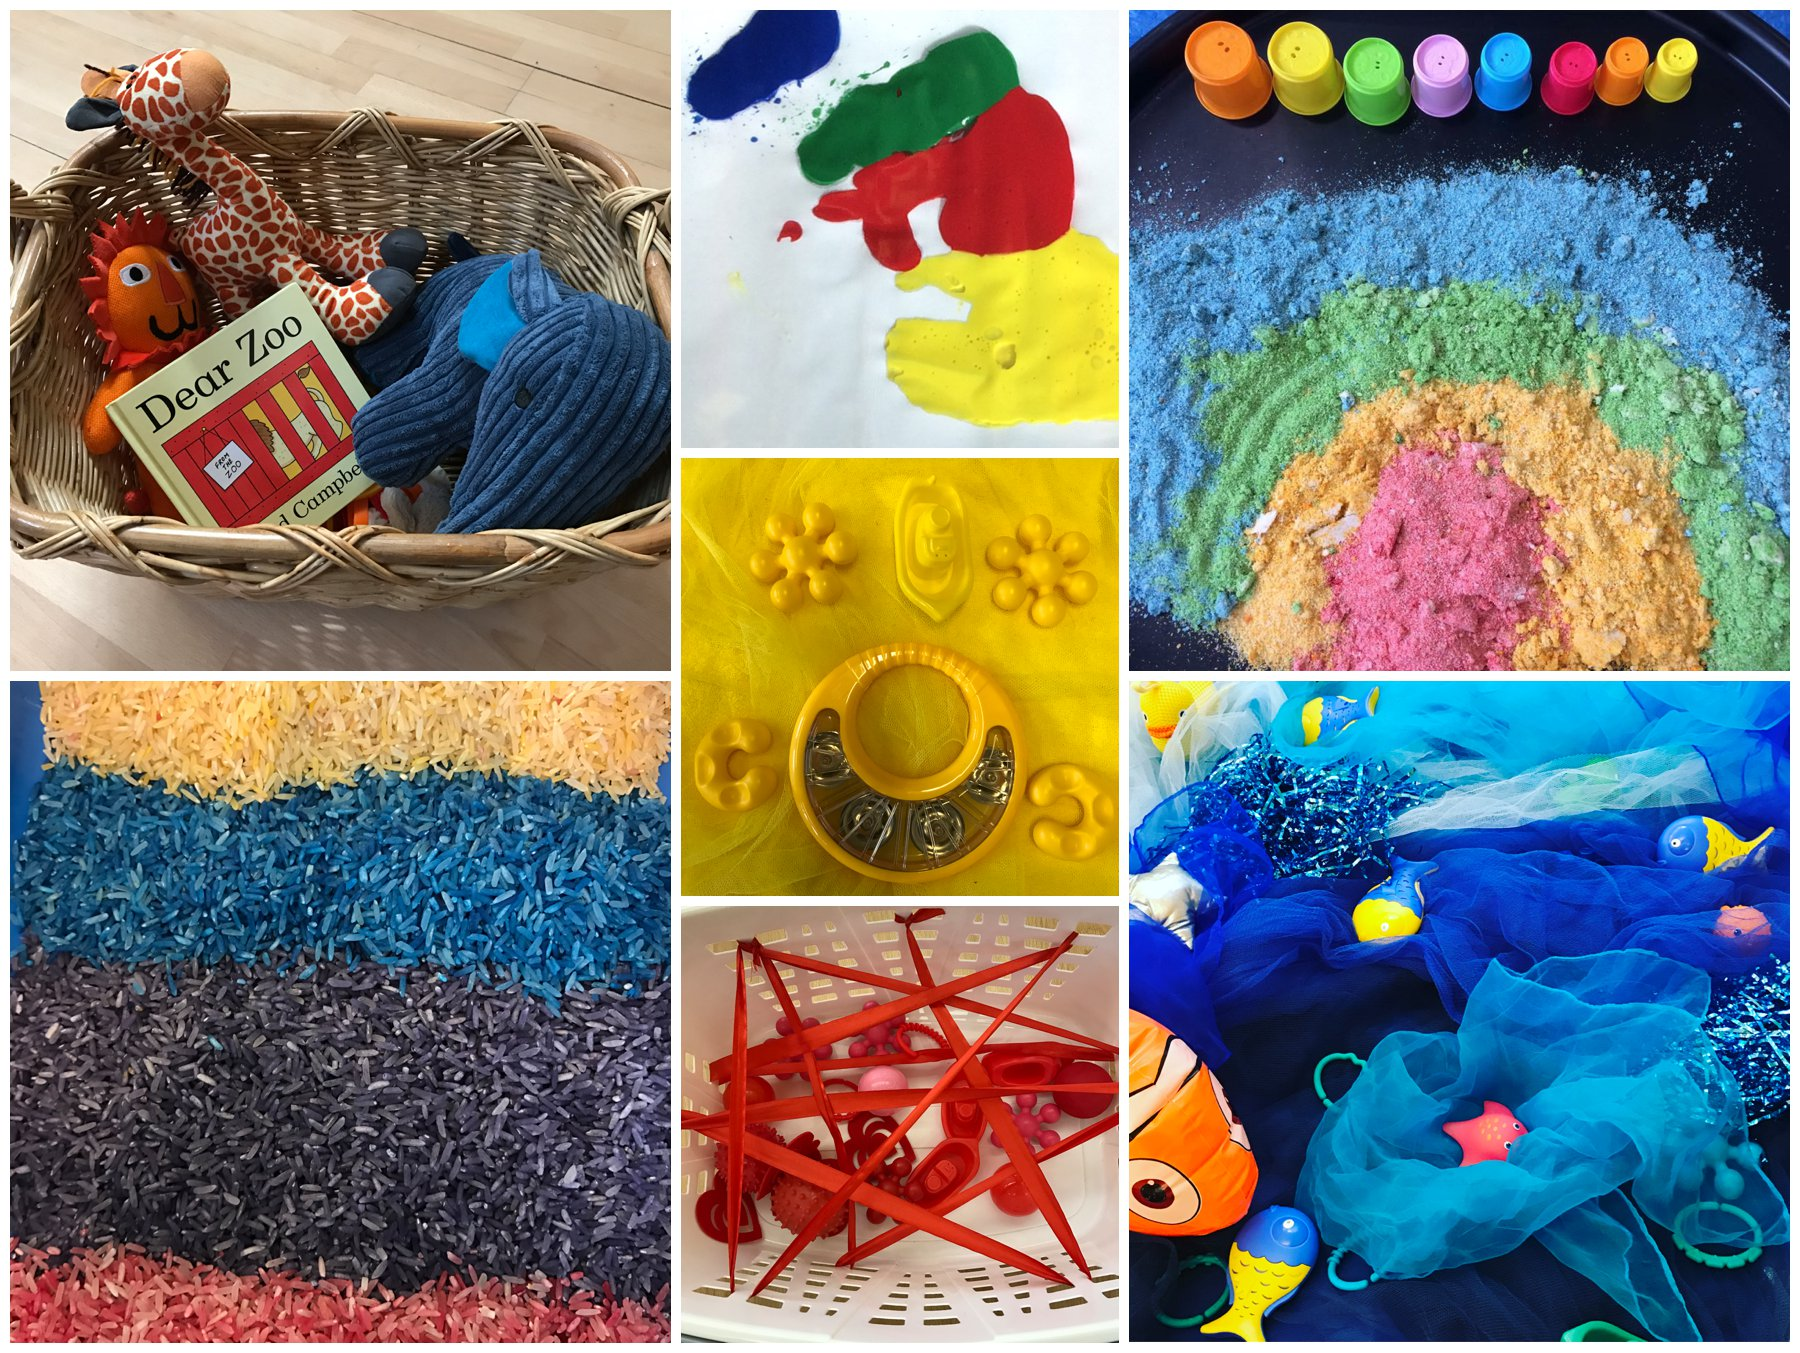 The sensory sessions sensory play classes Edinburgh